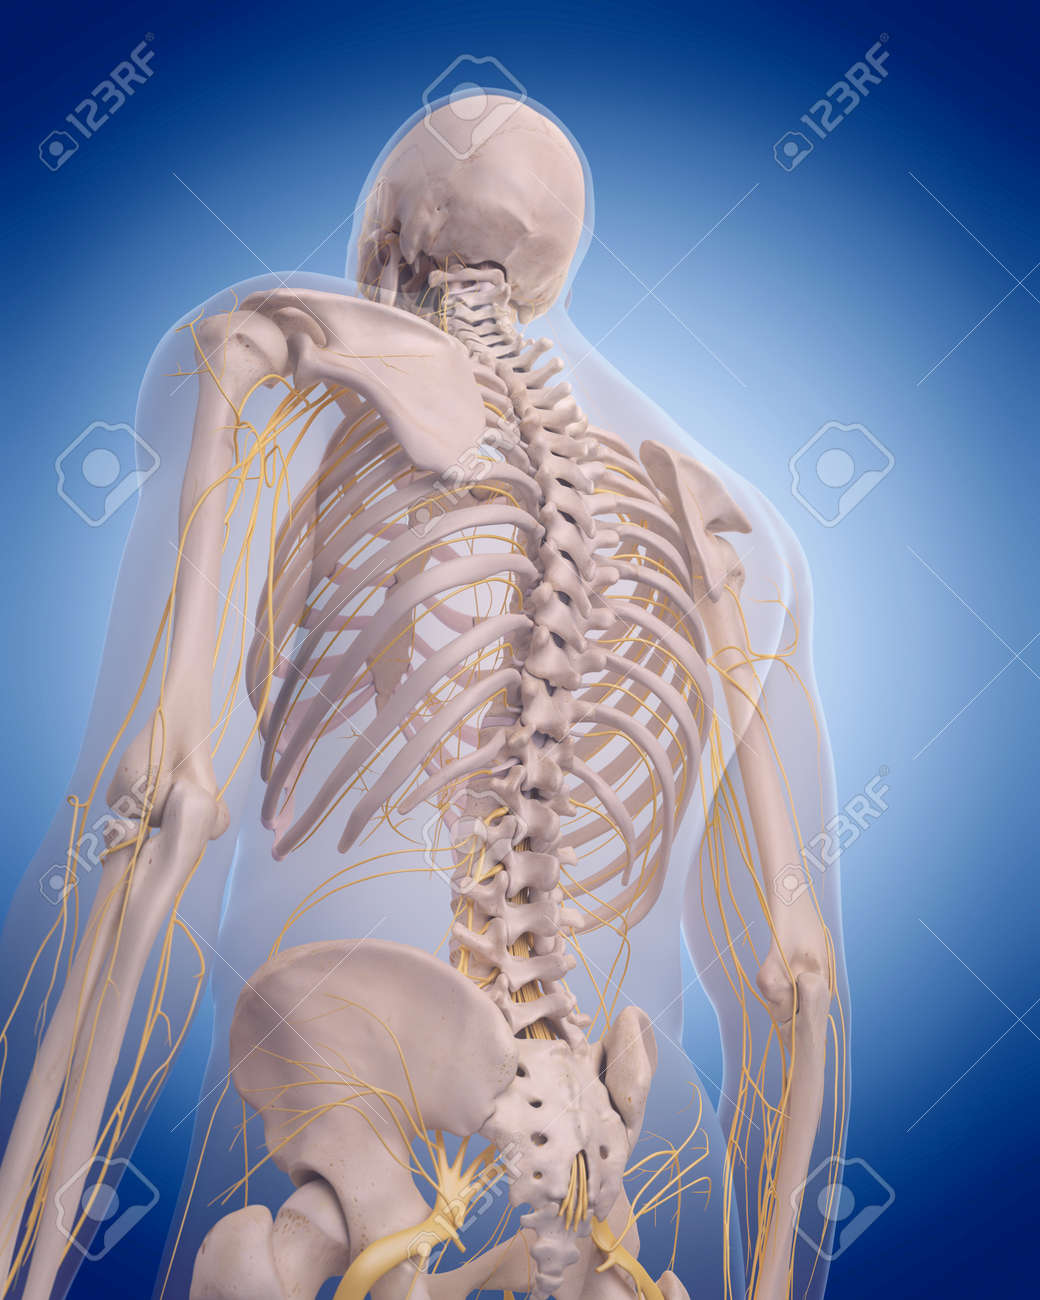 Medically Accurate Illustration Nerves Of The Back Stock Photo